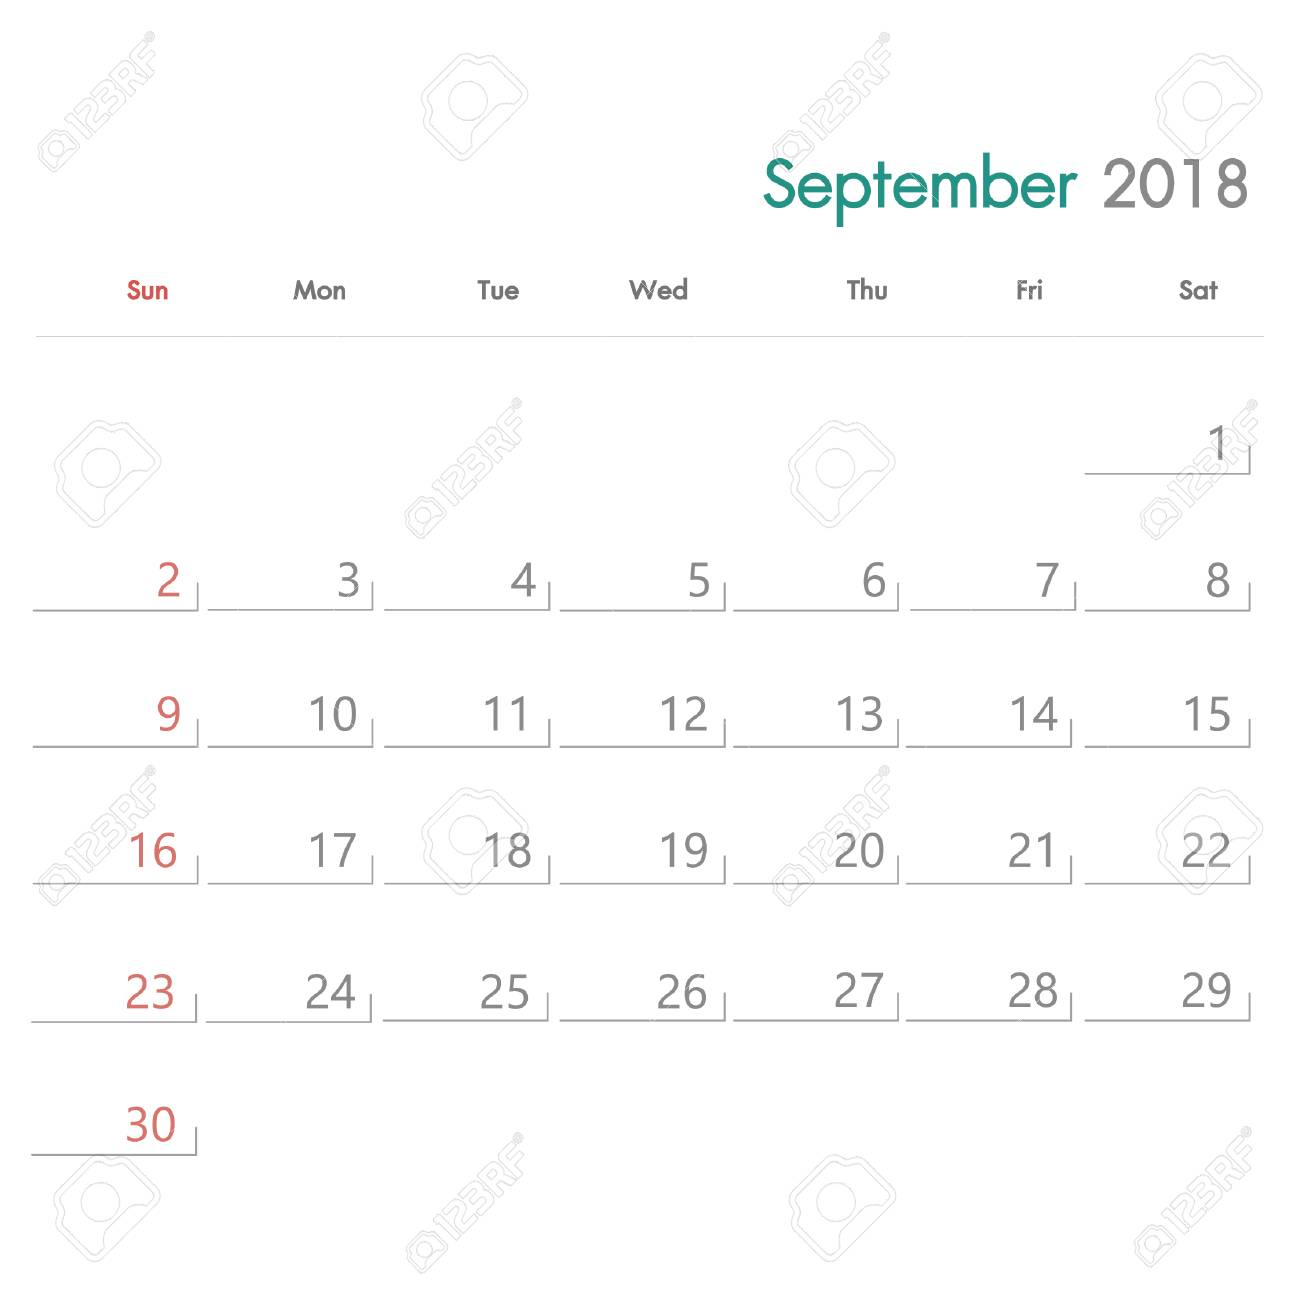 September 2018 Simple Calendar Template Royalty Free Cliparts